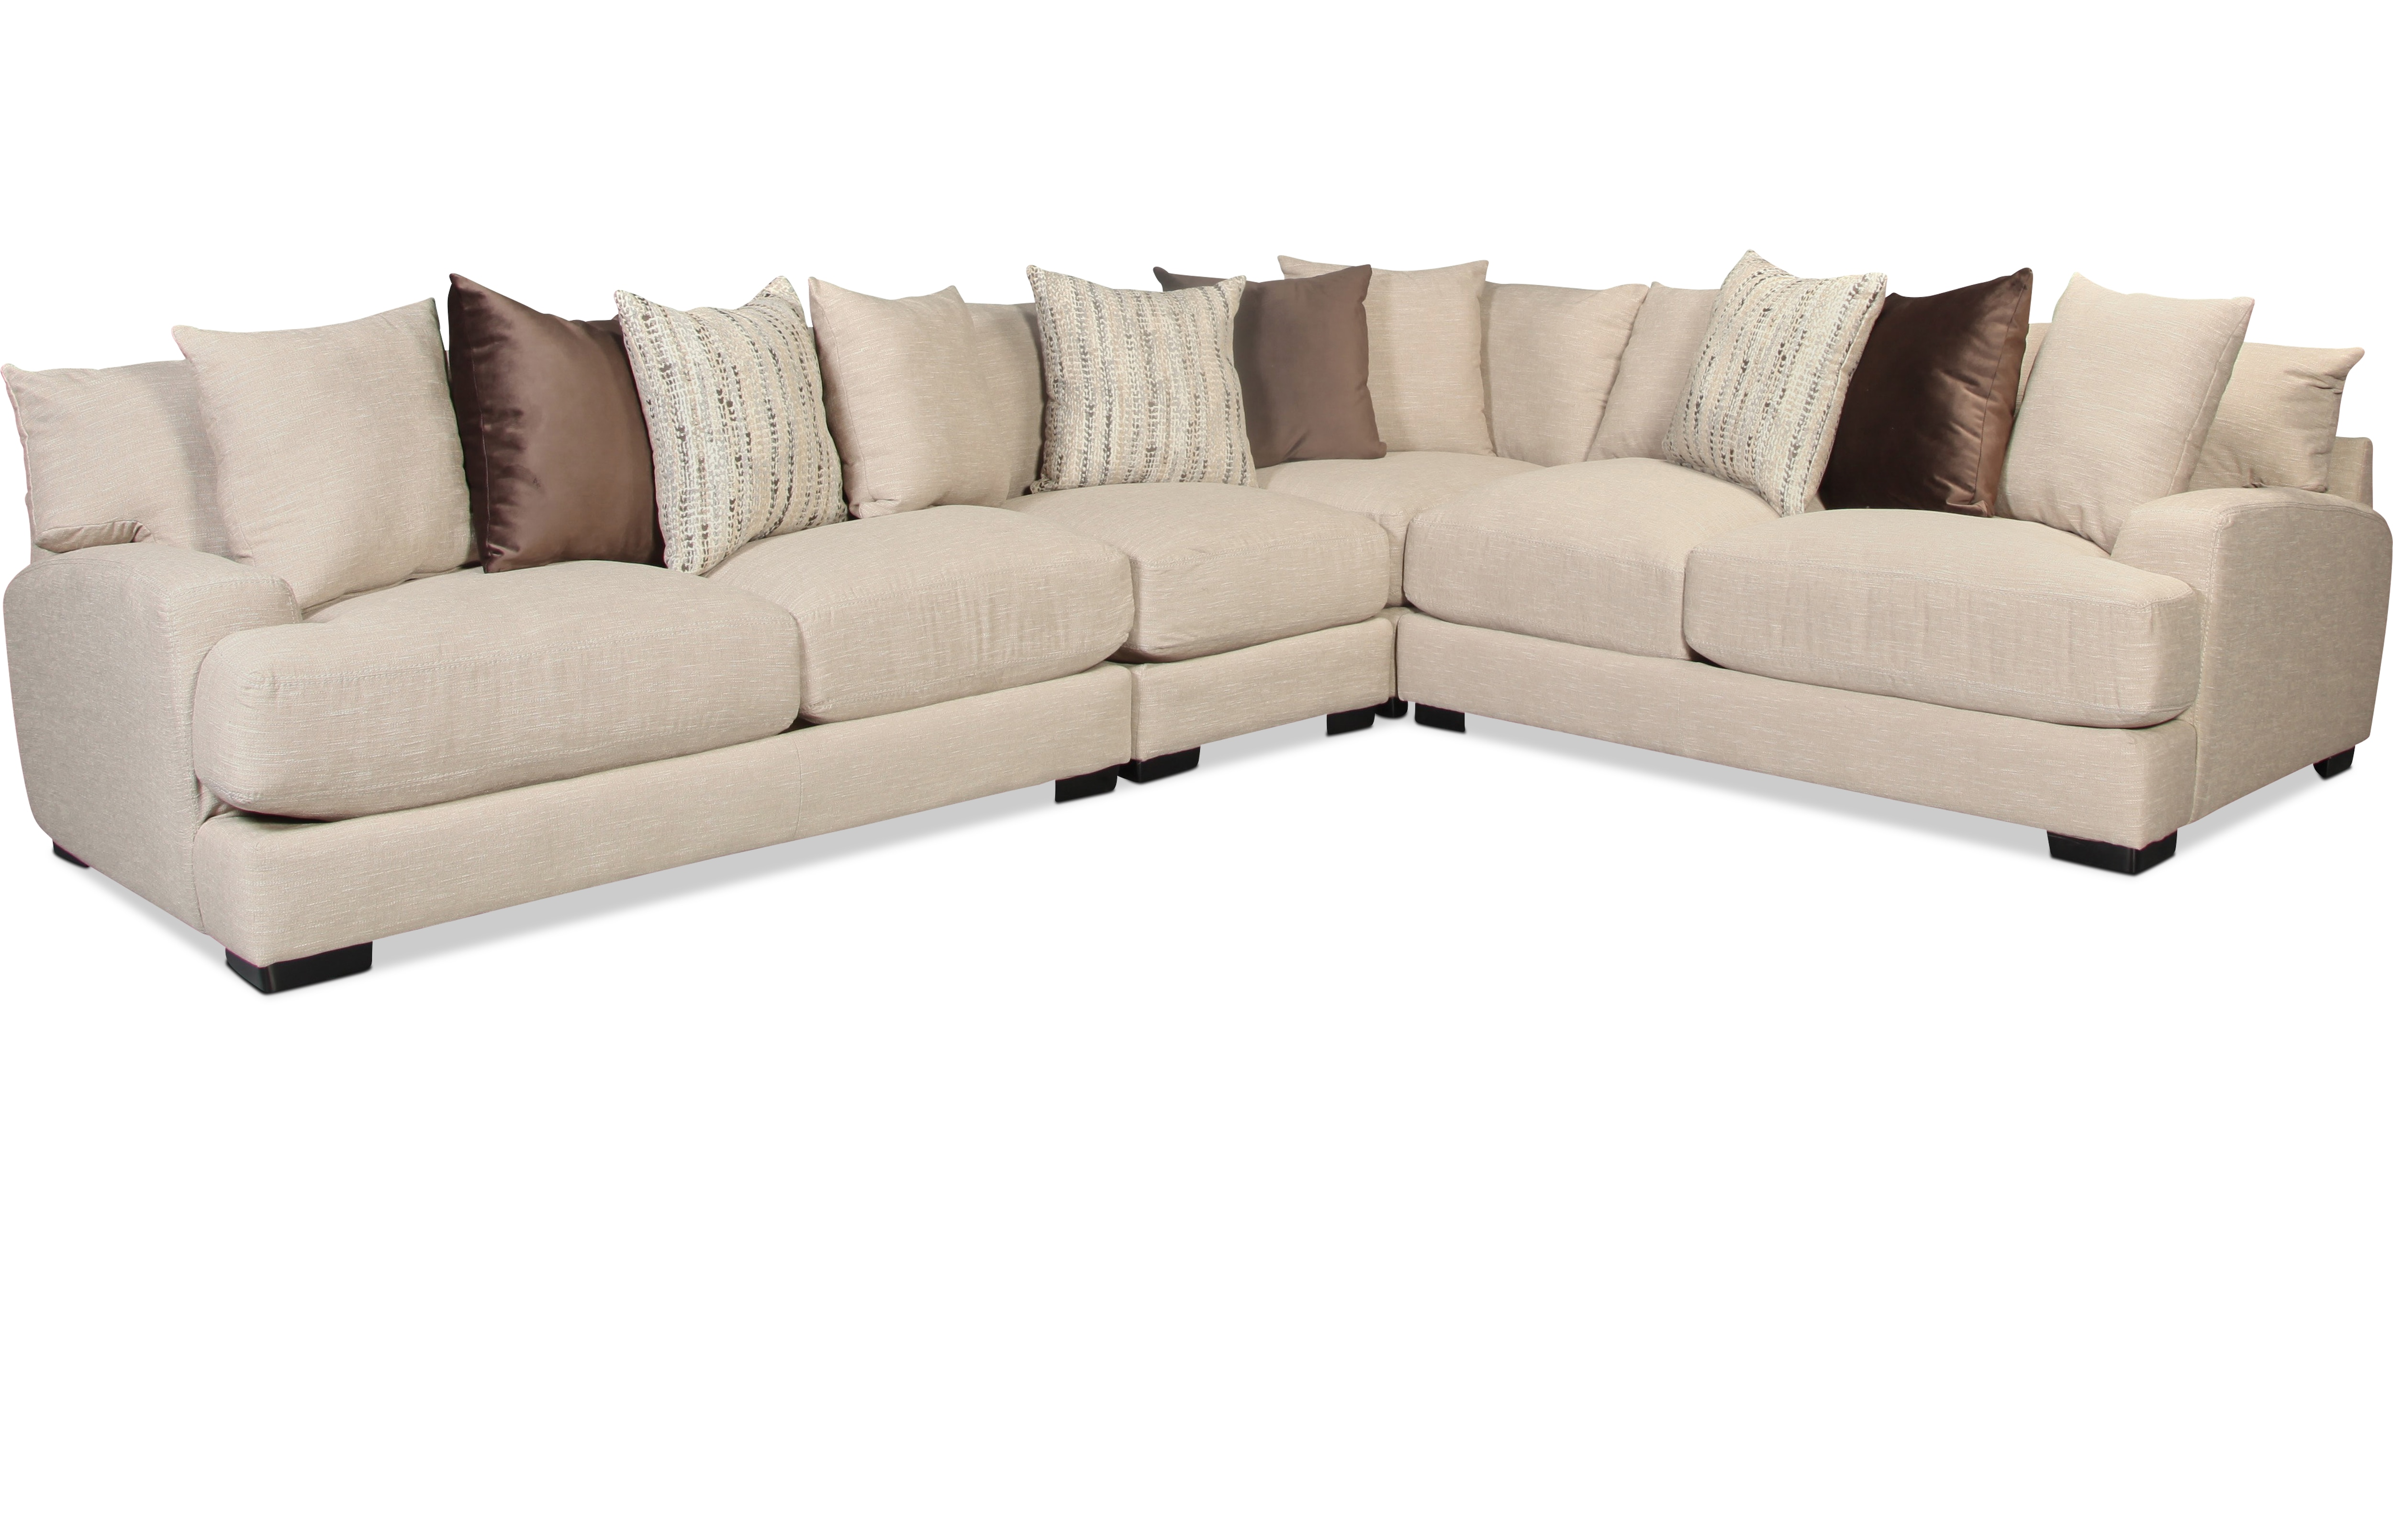 Caiden 4 Piece Sectional- Dusk